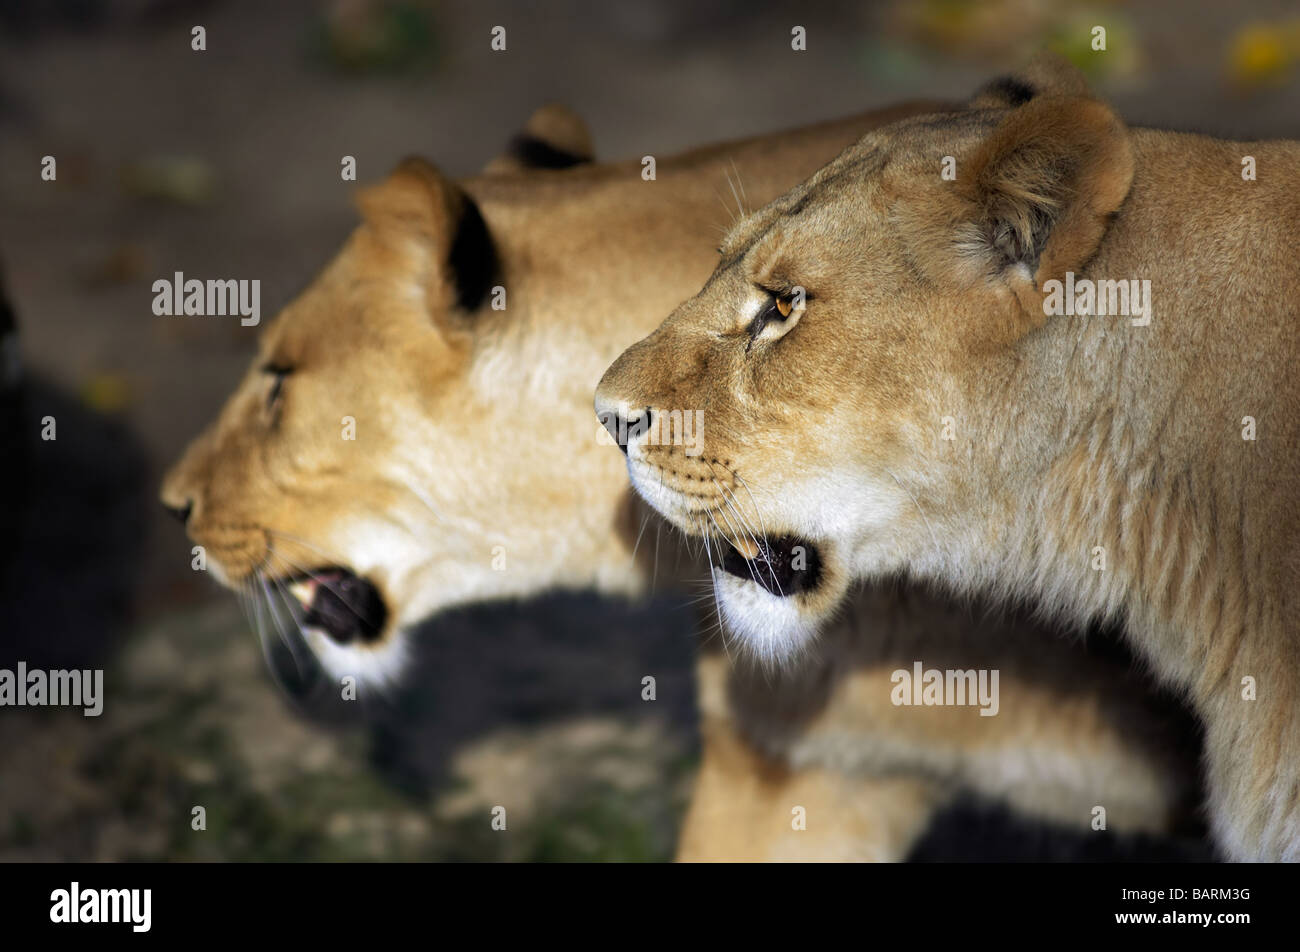 Lions walking together - photo#5